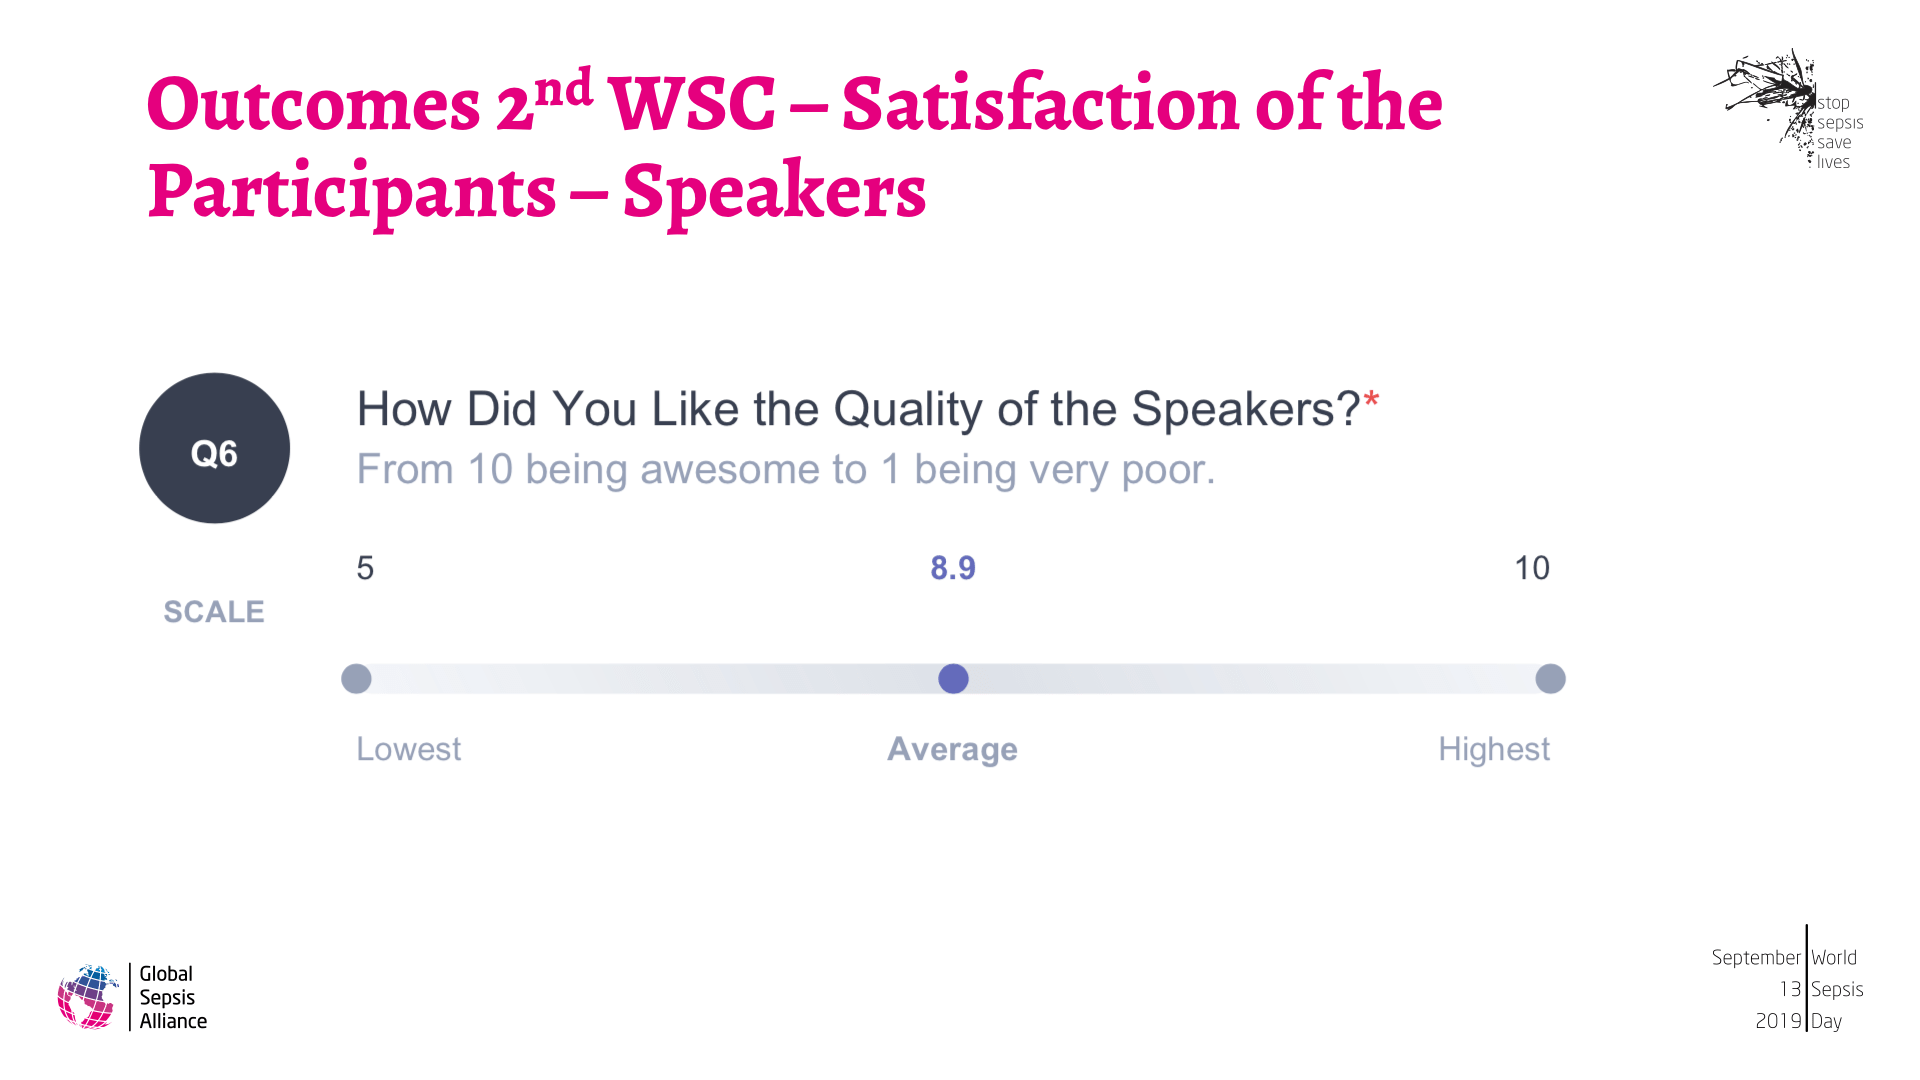 Outcomes 2nd WSC and WSD 2018 6.png